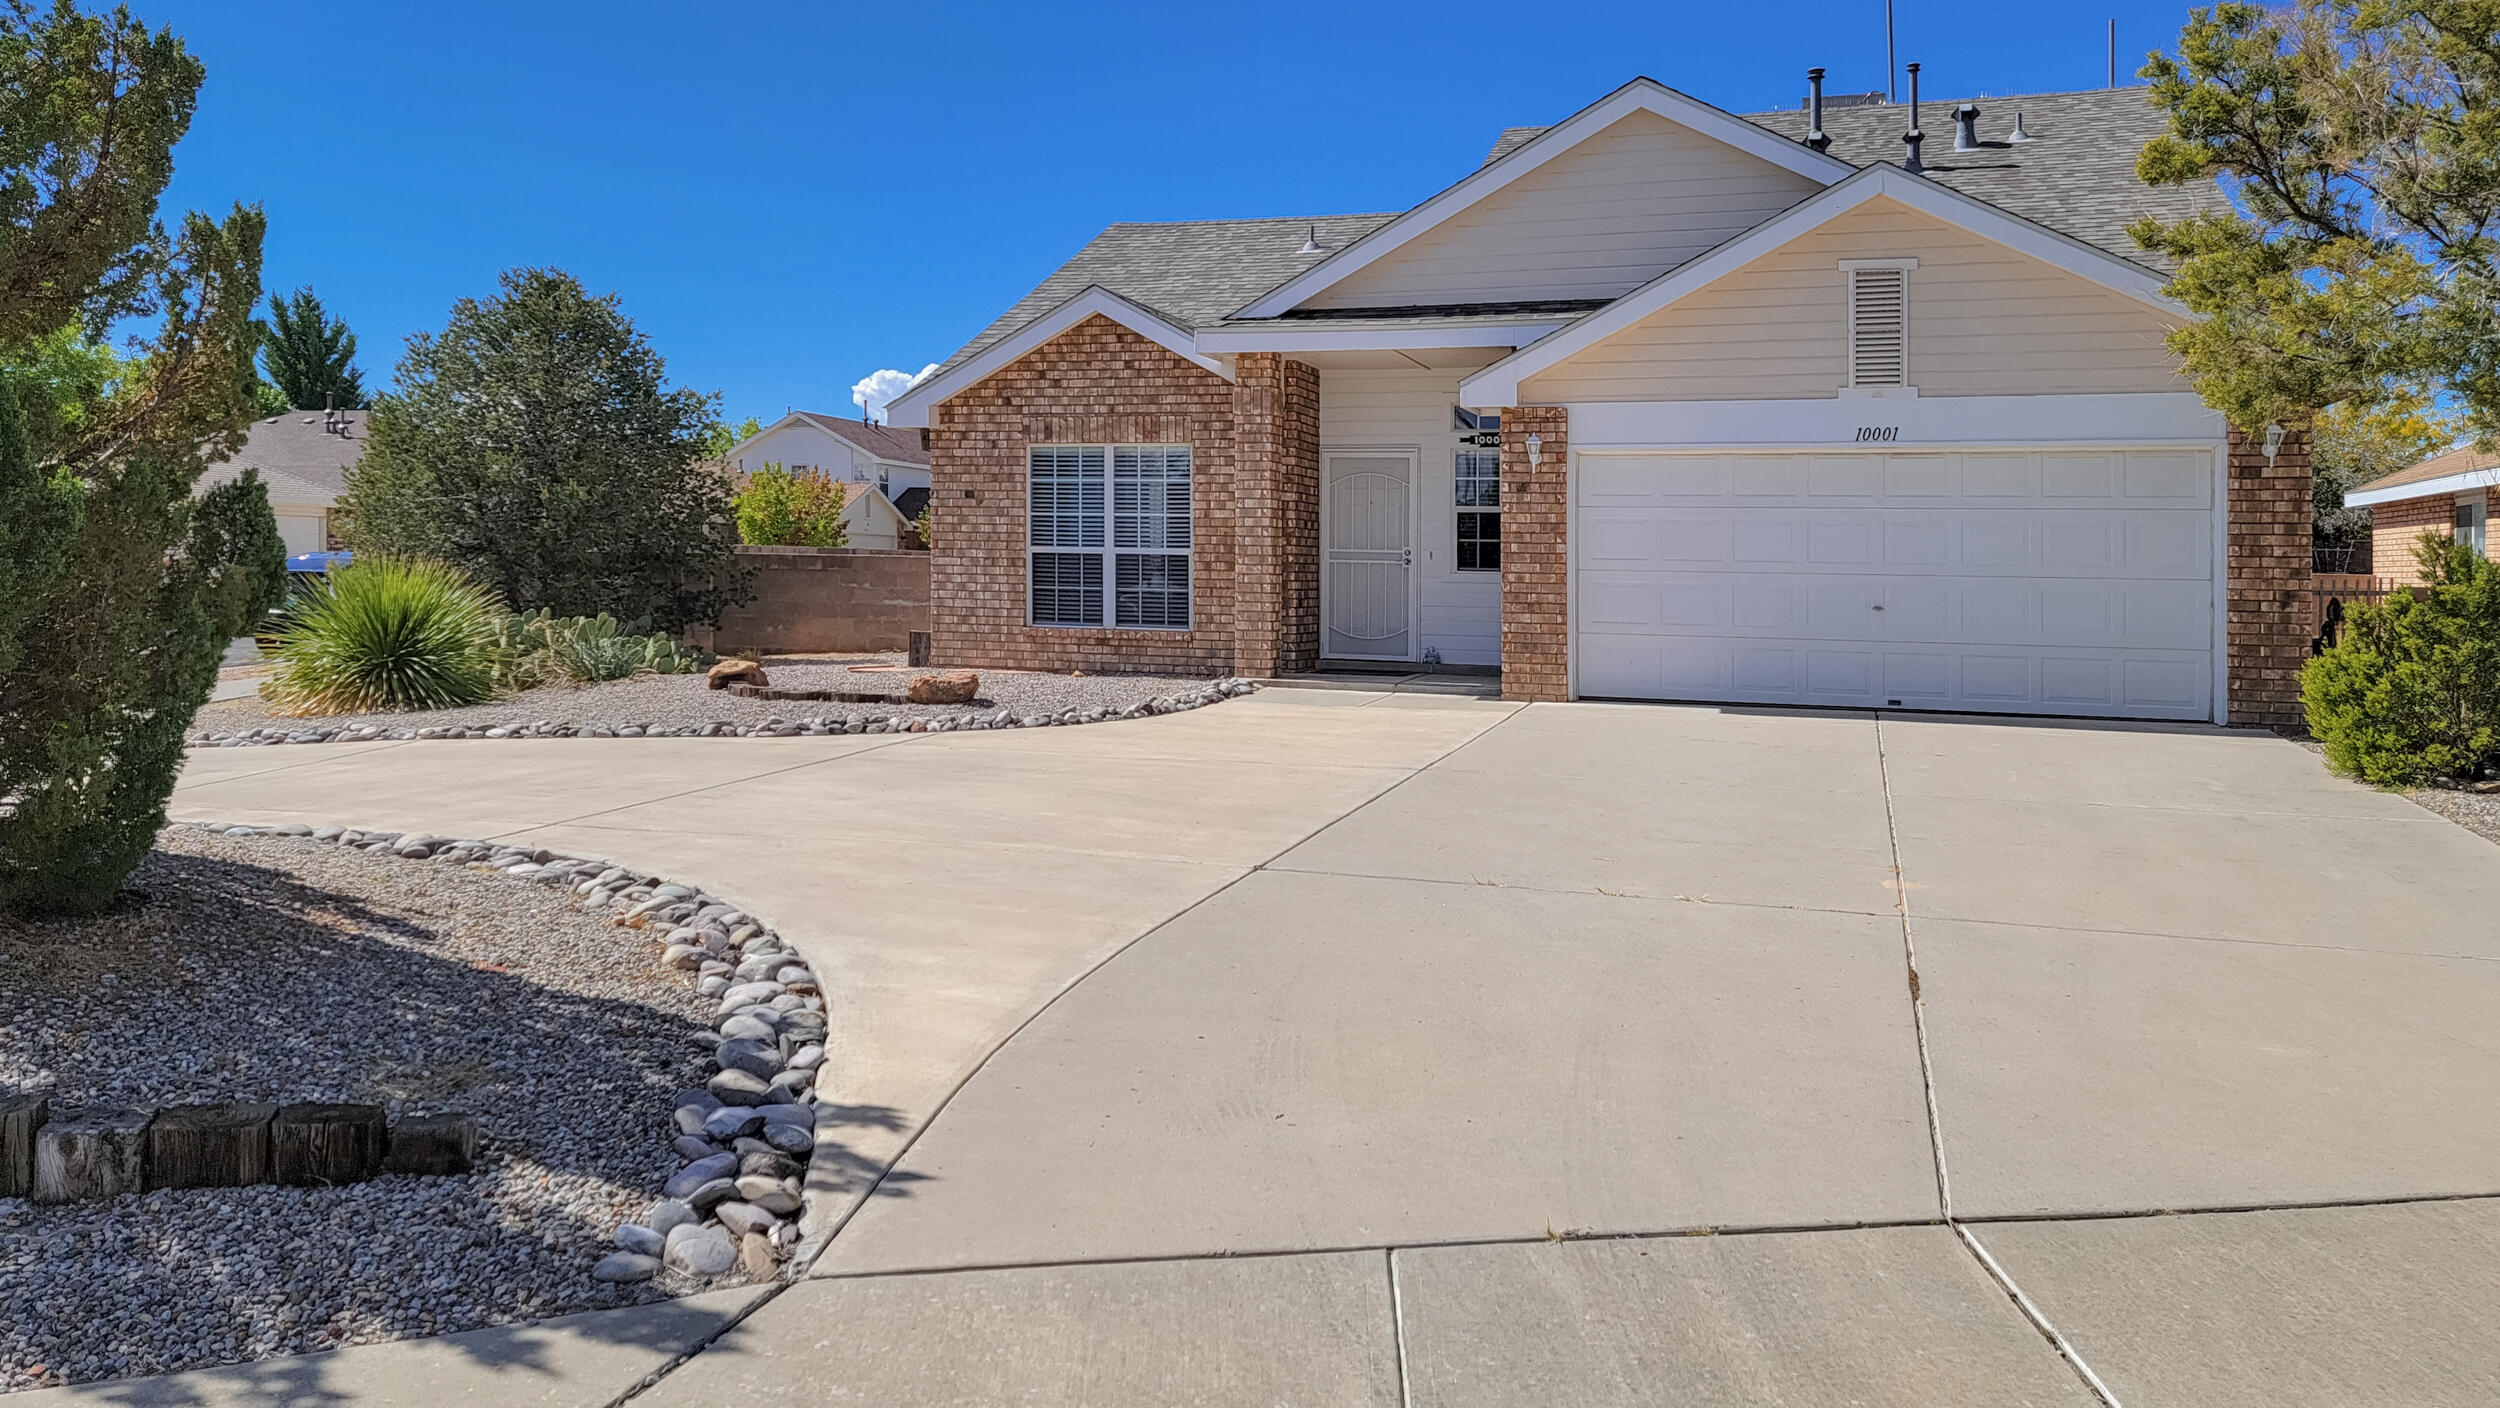 Fresh paint throughout, new water heater, new furnace, new swamp cooler and new roof. Large yard with backyard access. Least expensive home in Ventana Ranch! Get your offers in today, won't last long!